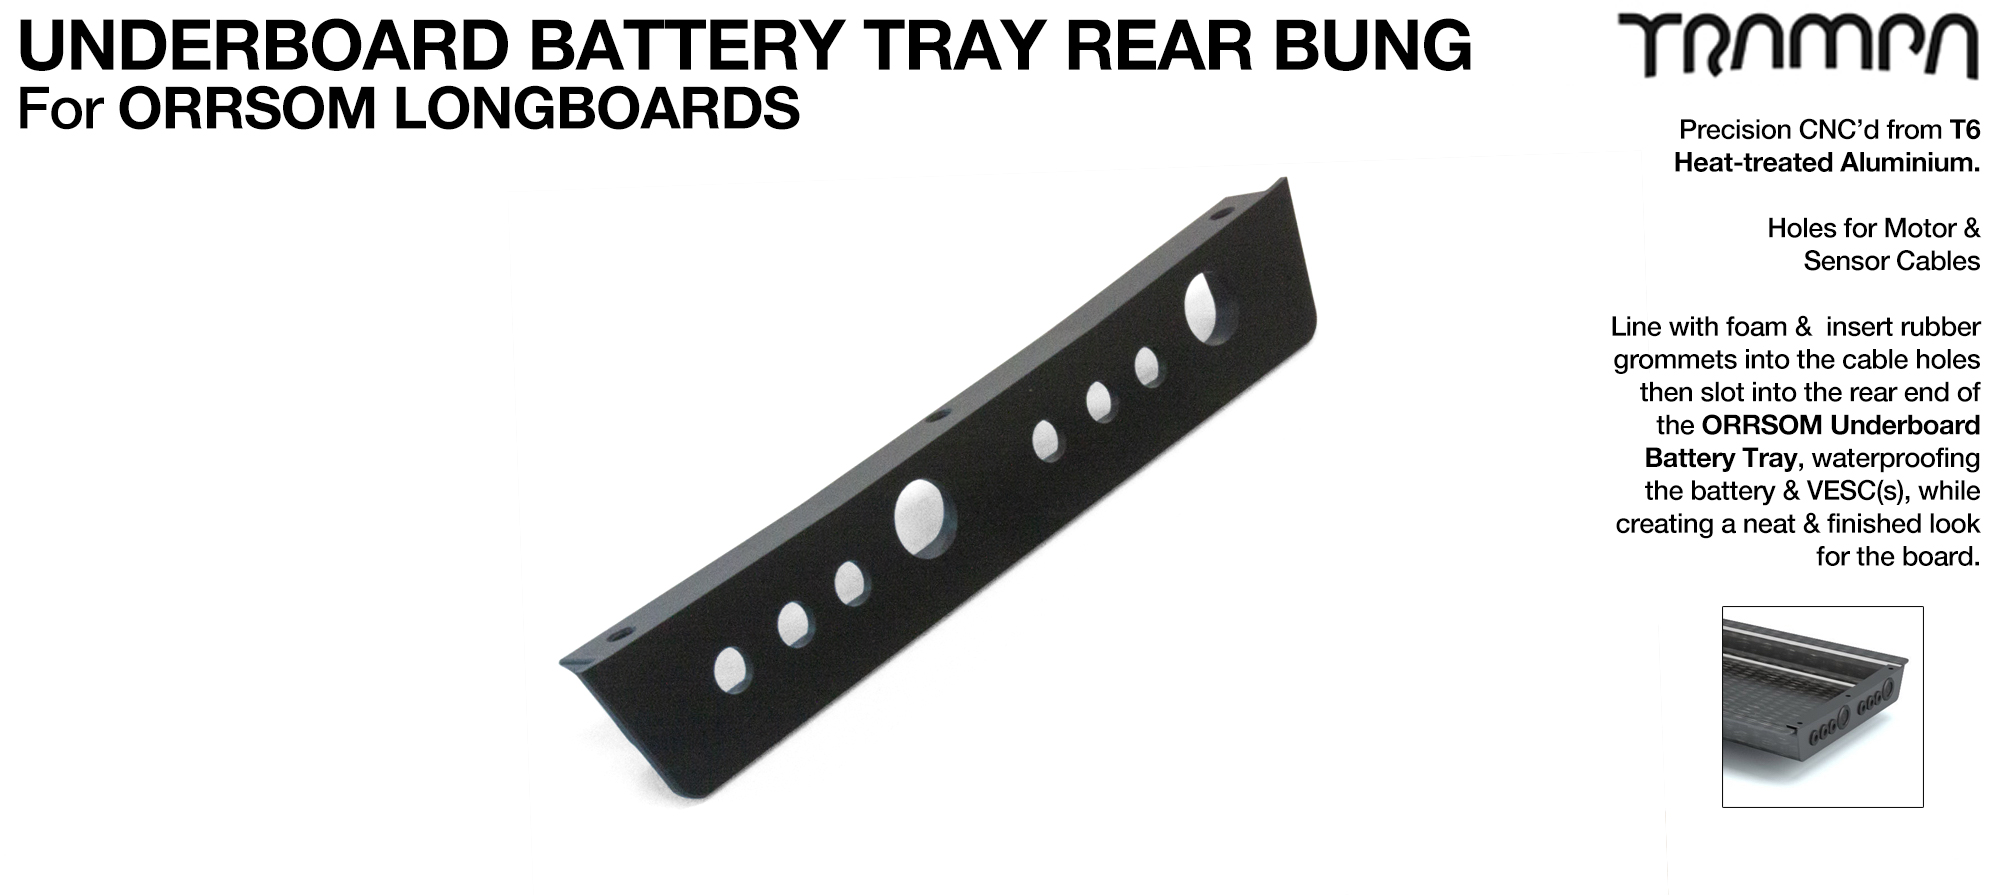 Underboard Battery Tray Rear end T6 Bung